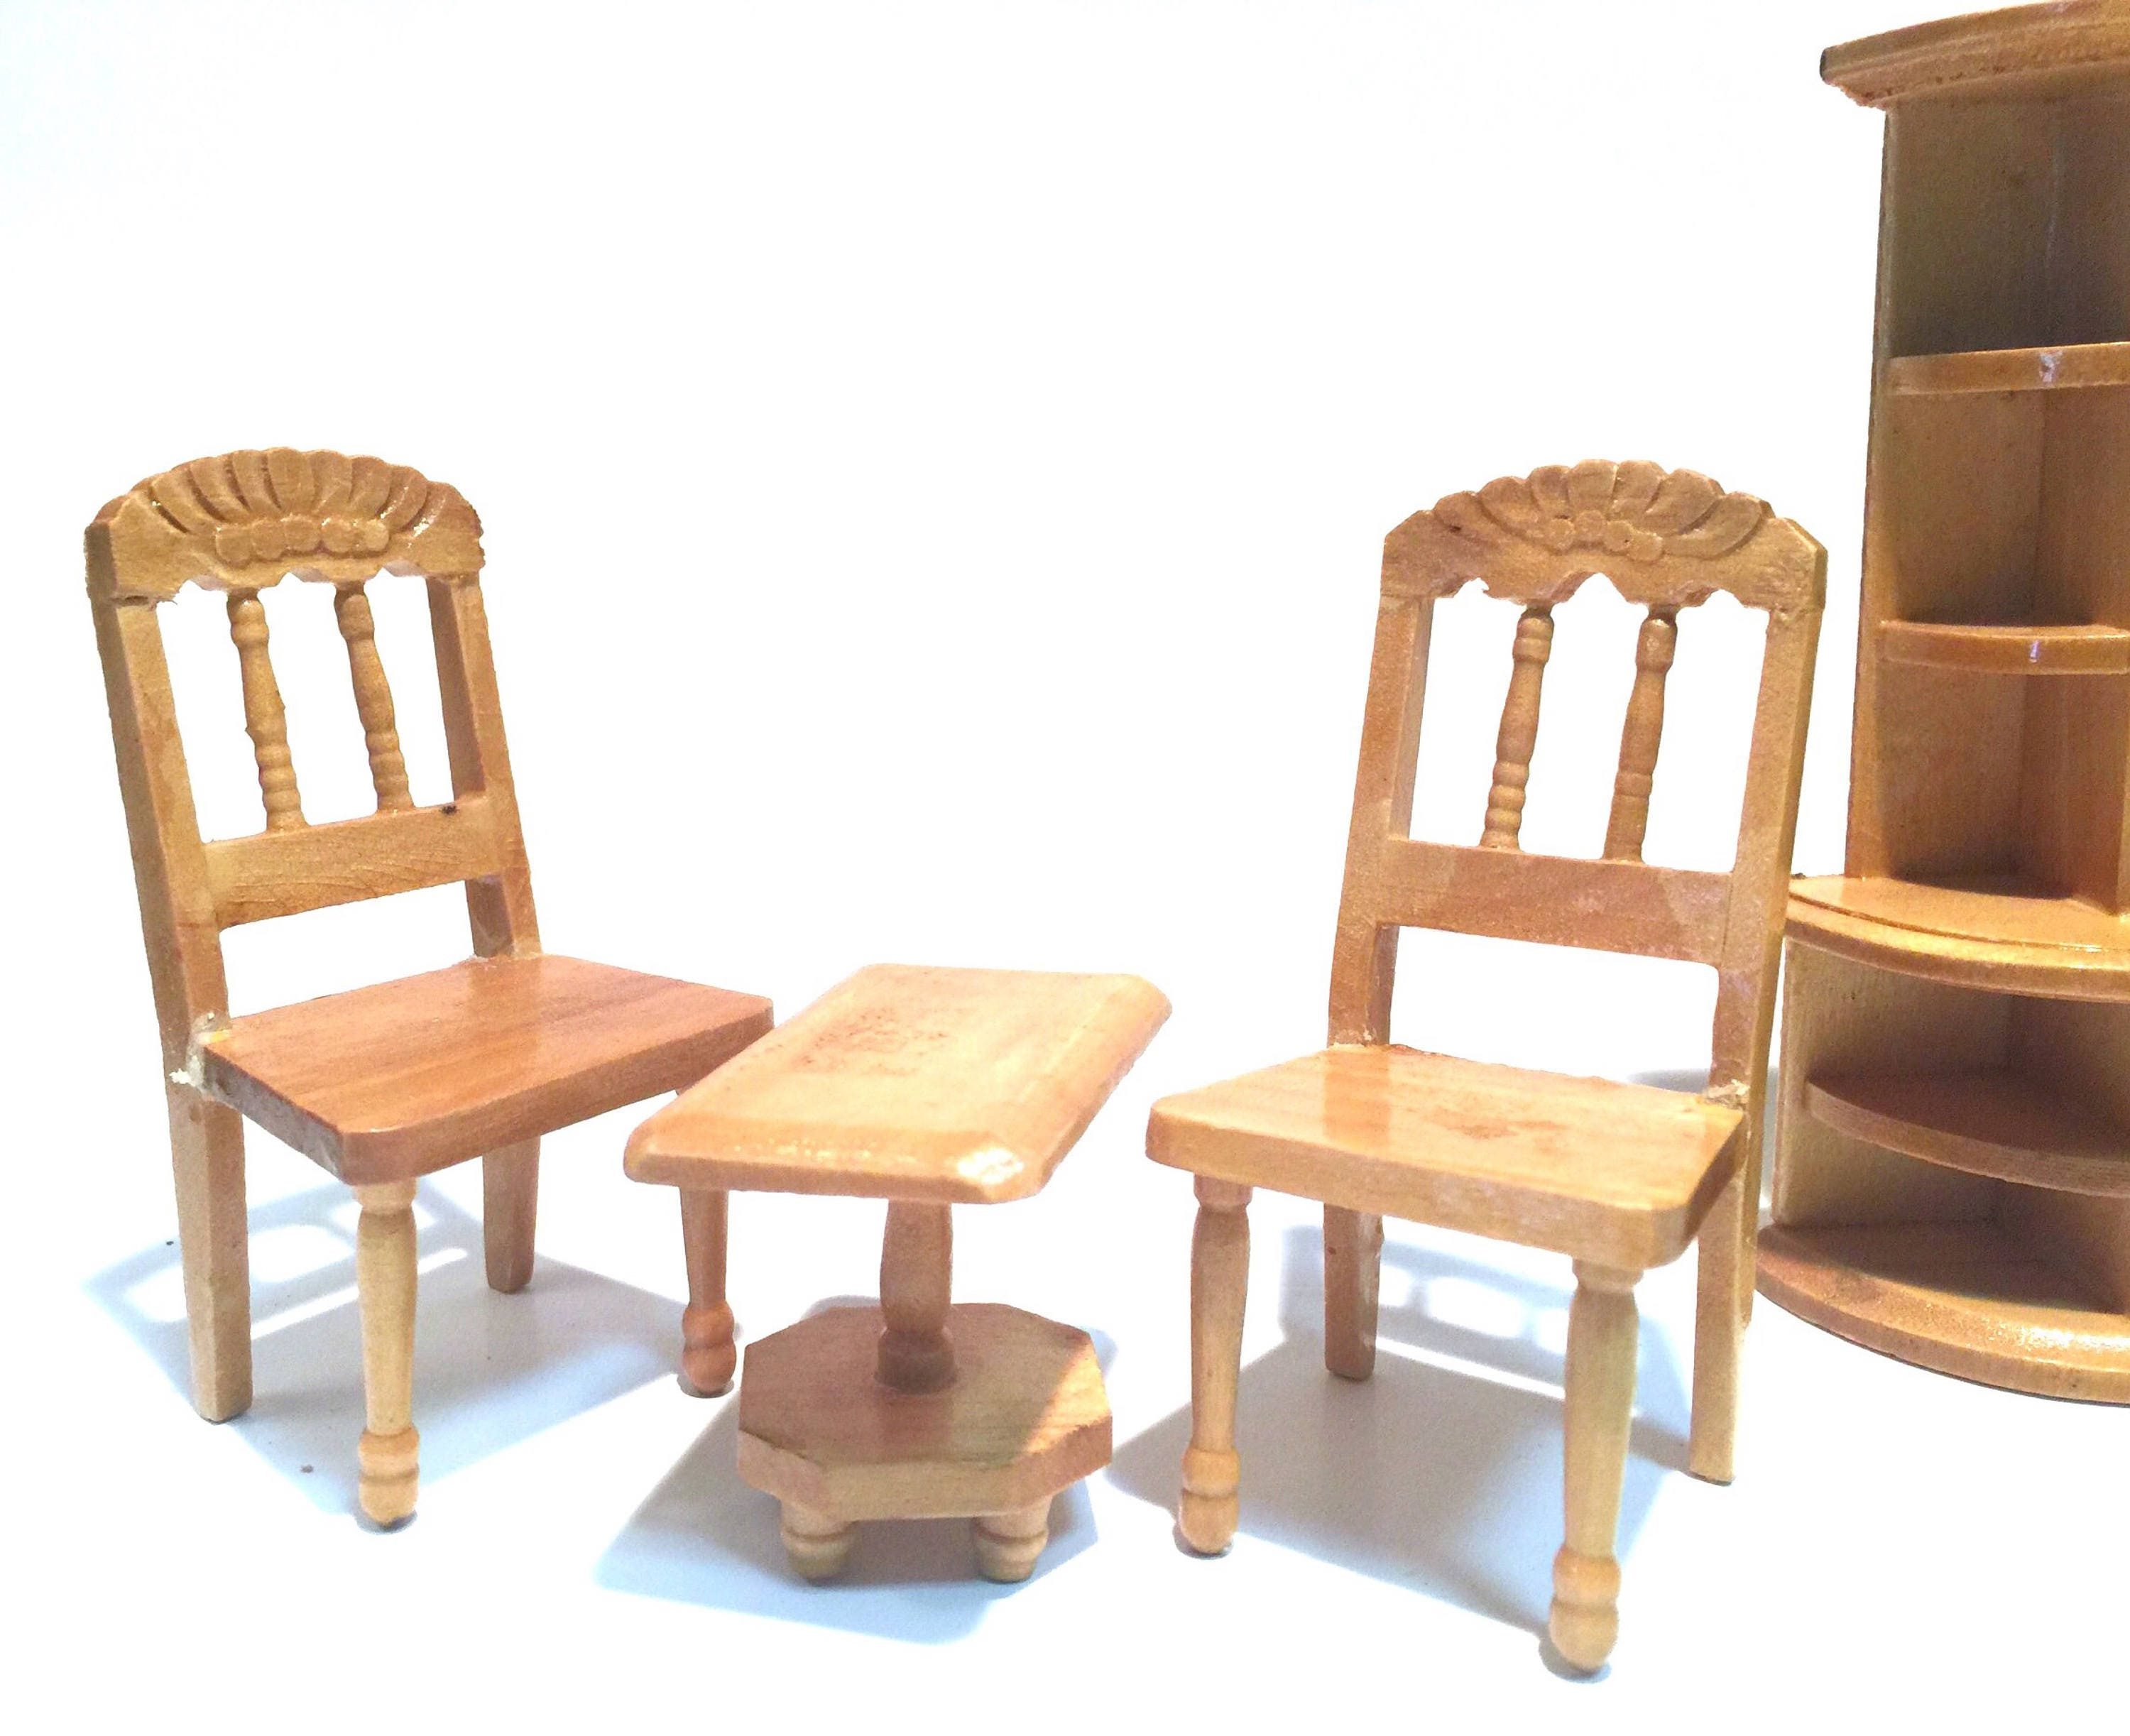 Vintage Dollhouse Furniture,Living Room Set,Table & Chairs,China ...